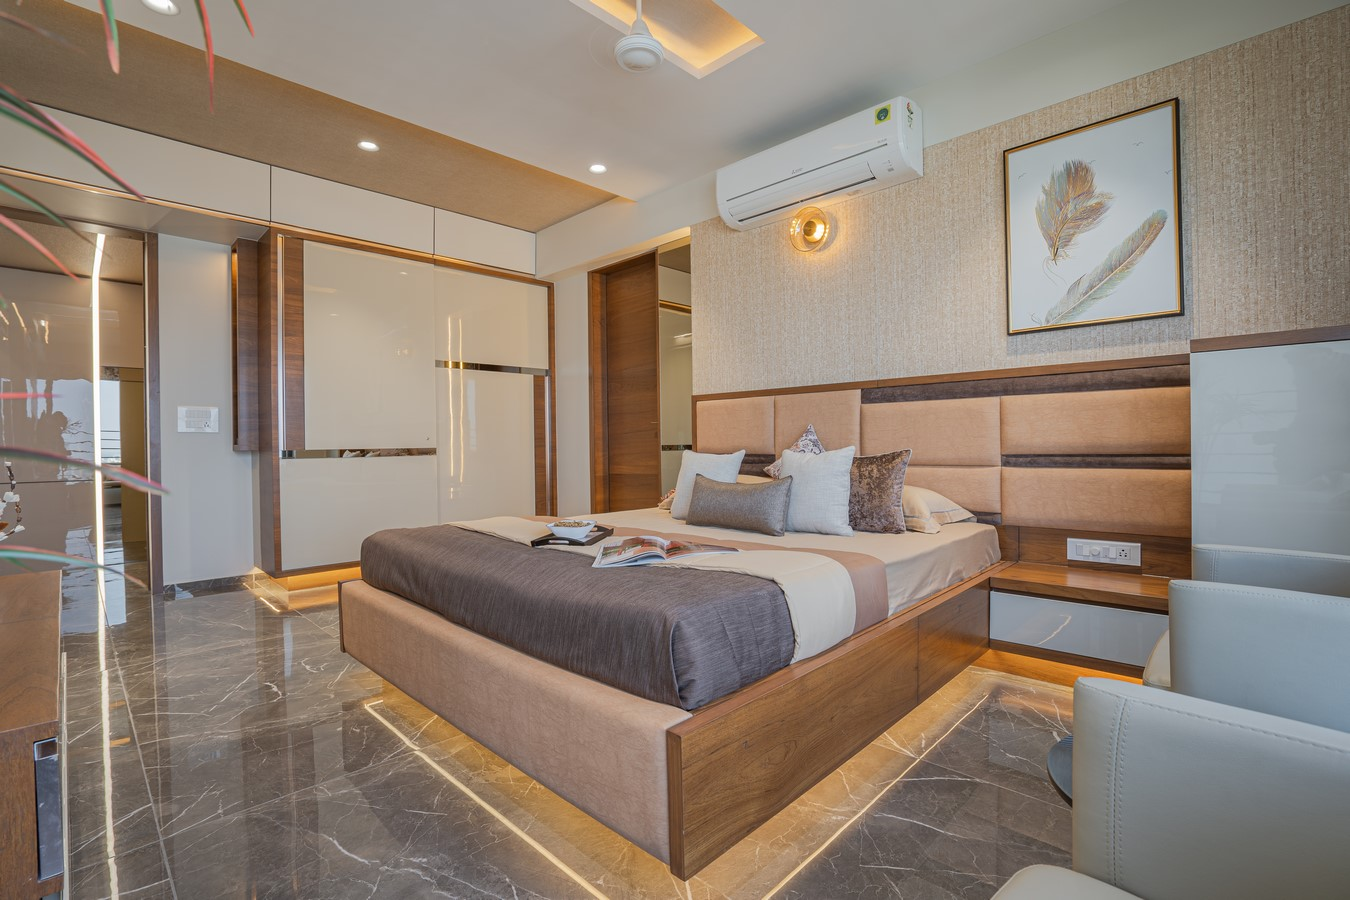 4BHK Apartment at Maple Tree by Shayona Consultant - Sheet2